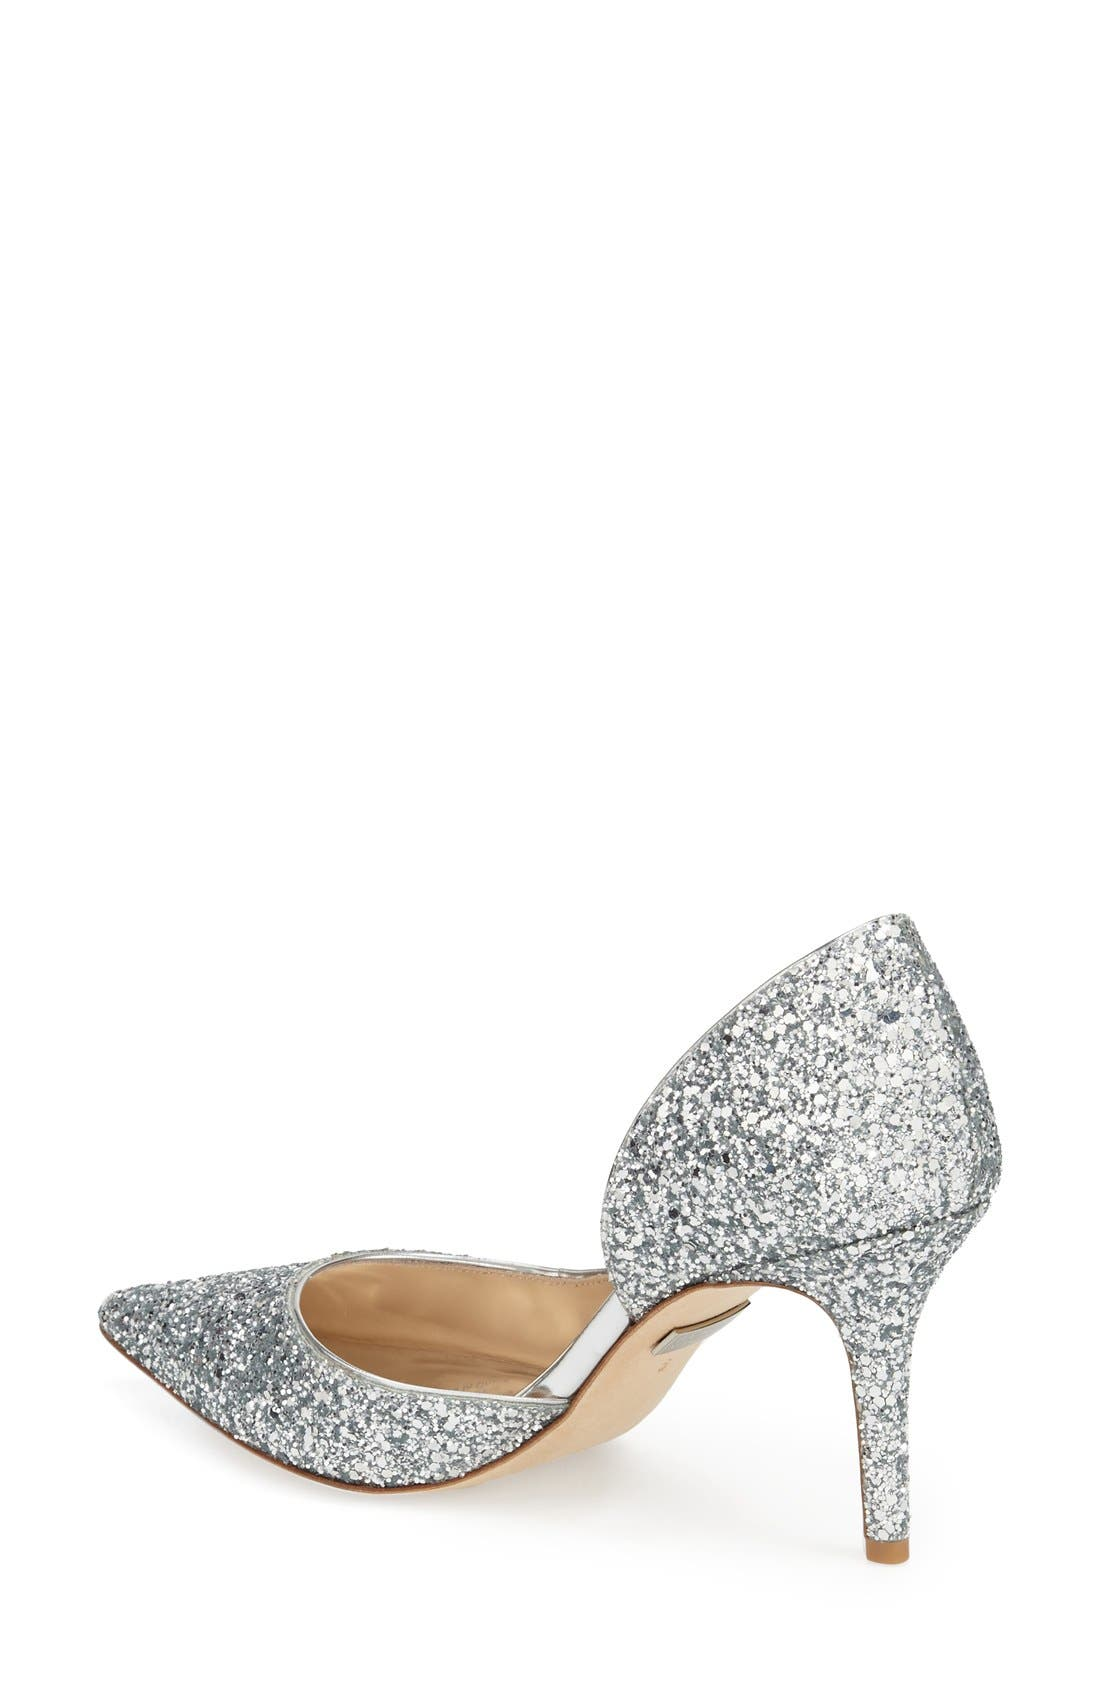 Alternate Image 2  - Badgley Mischka 'Daisy' Embellished Pointy Toe Pump (Women)